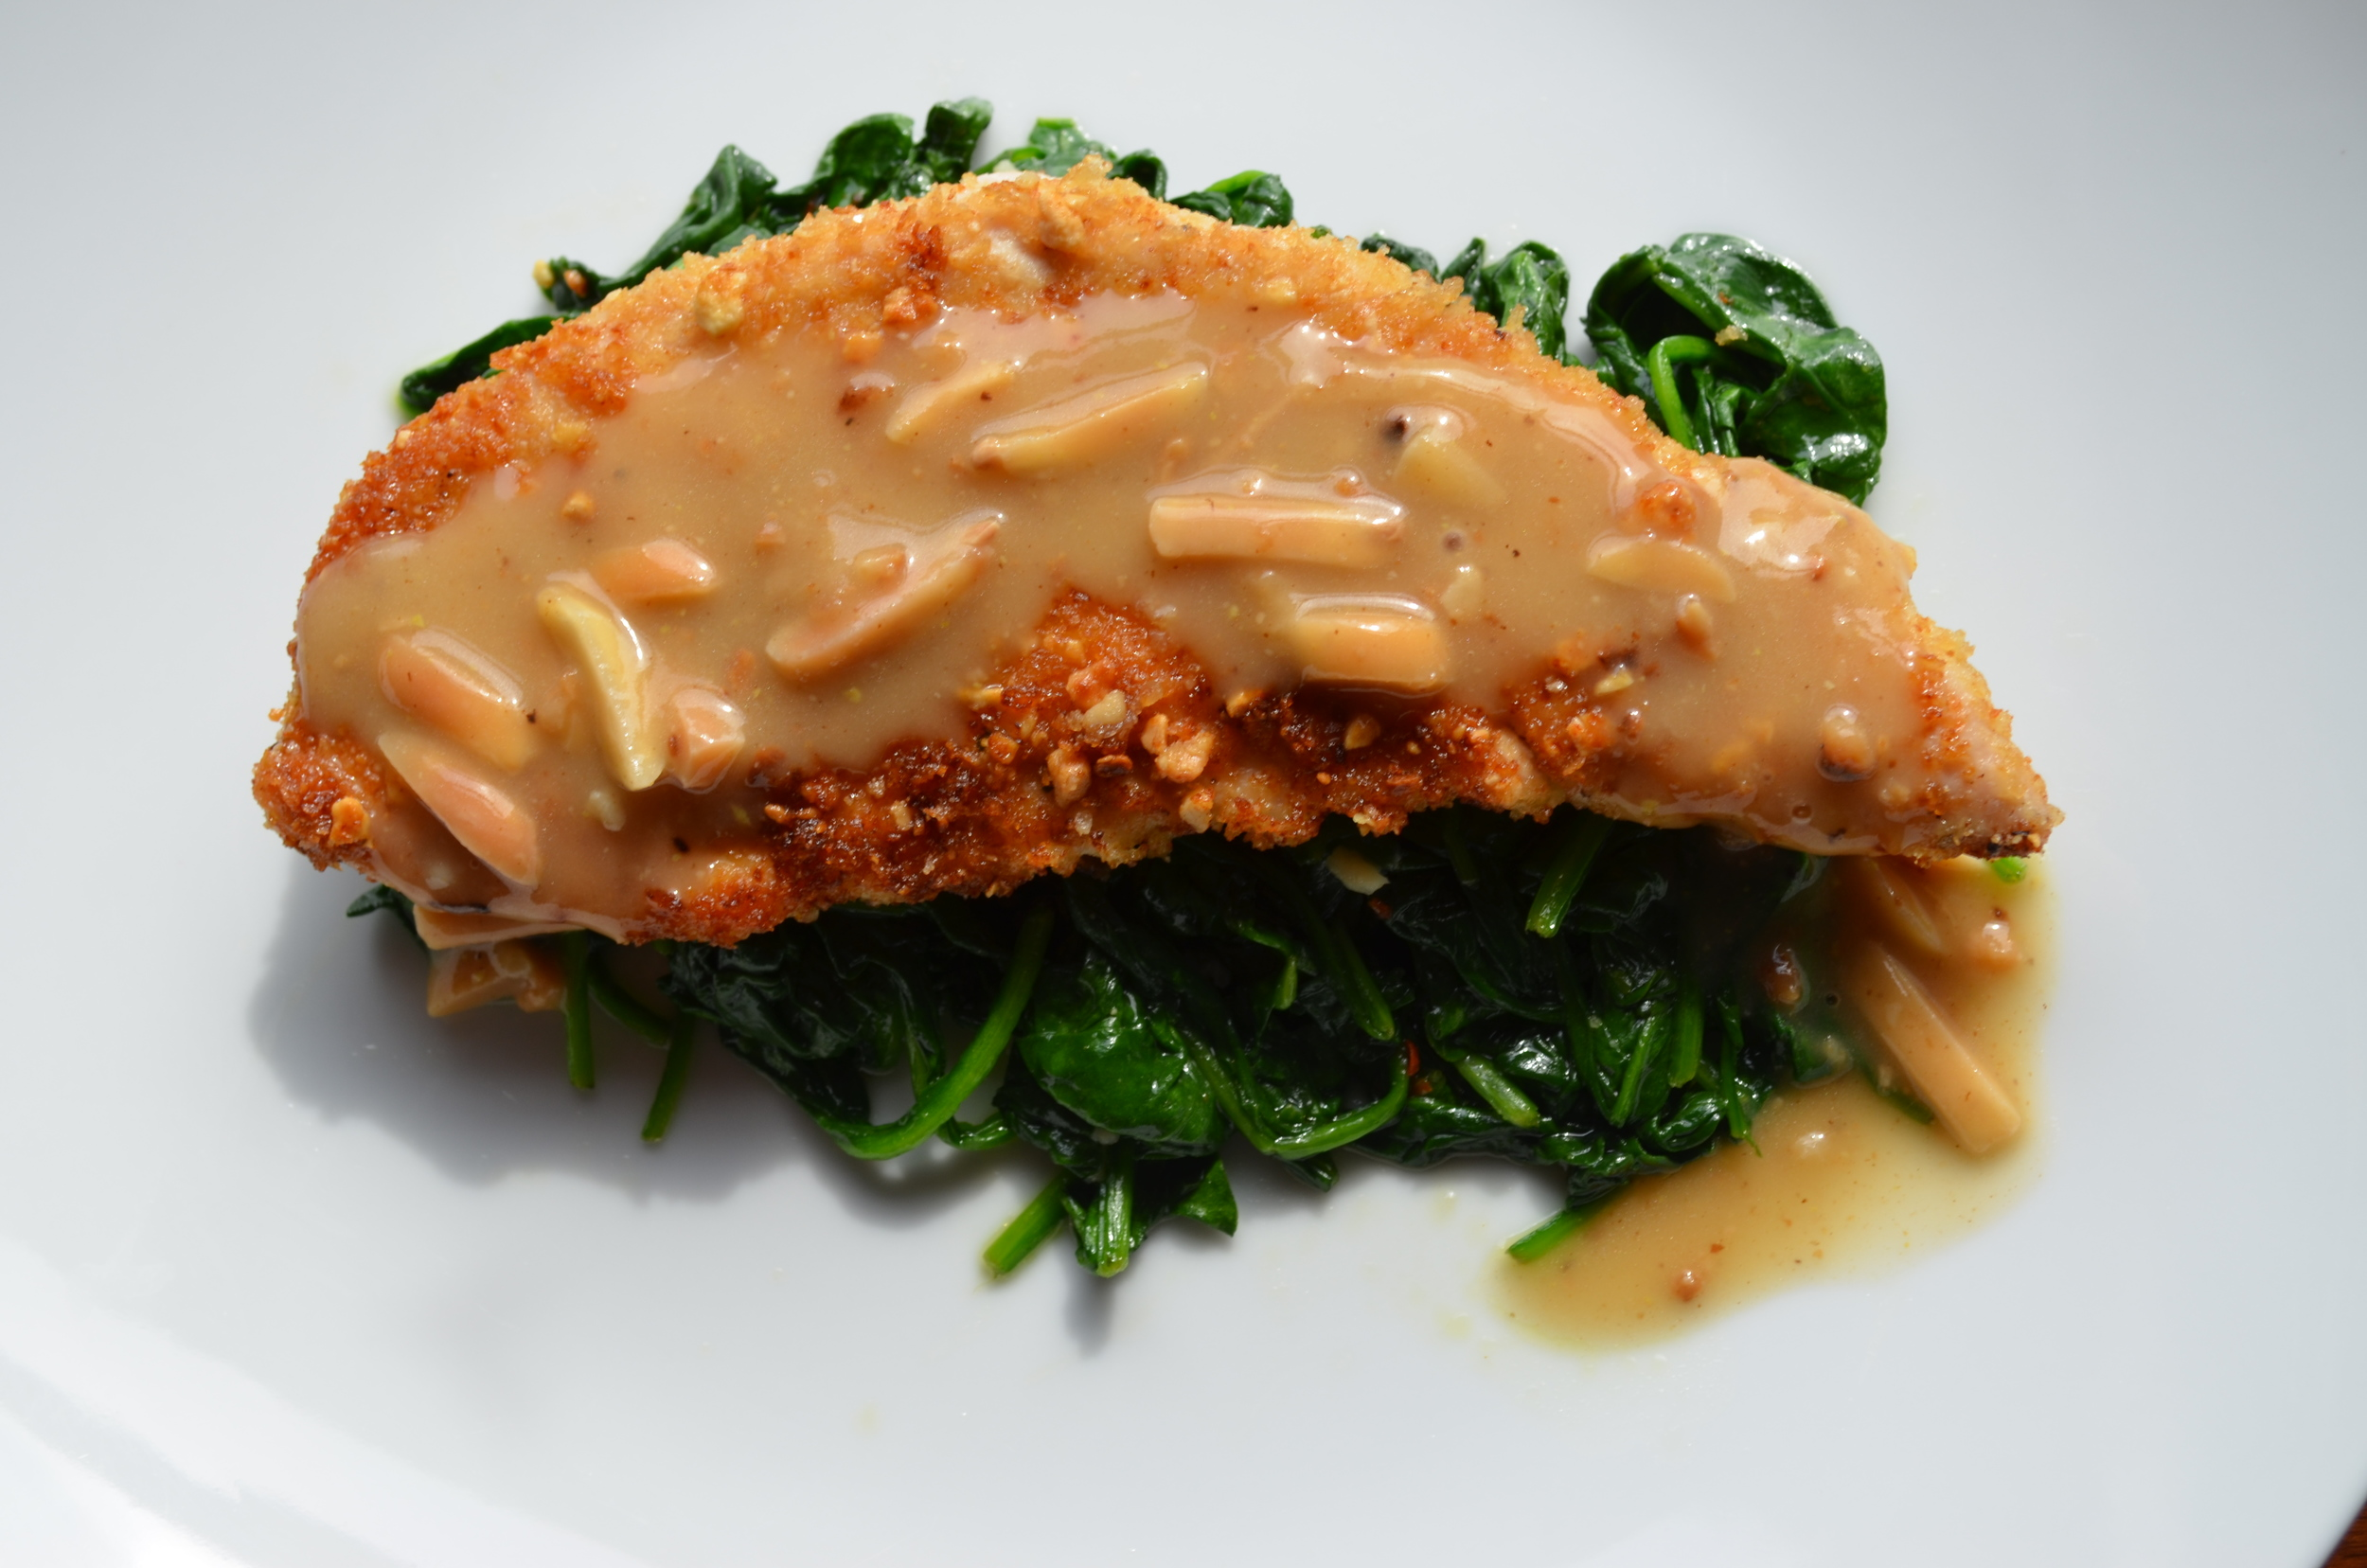 Almond Crusted Turkey Tenderloin with Almond Gravy